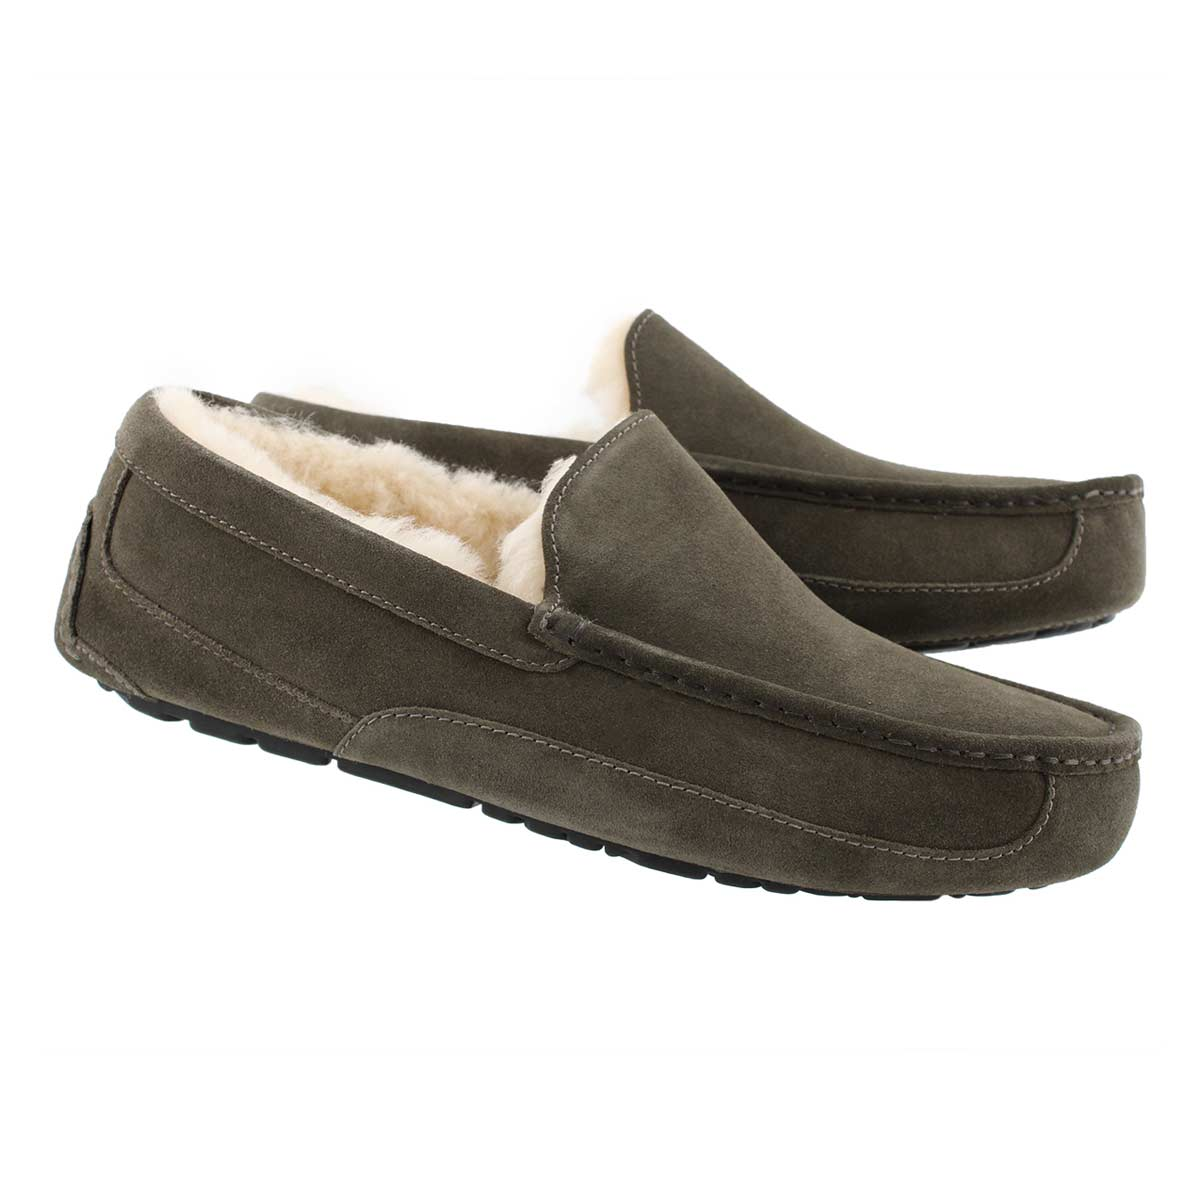 Mns Ascot charcoal sheepskin slipper